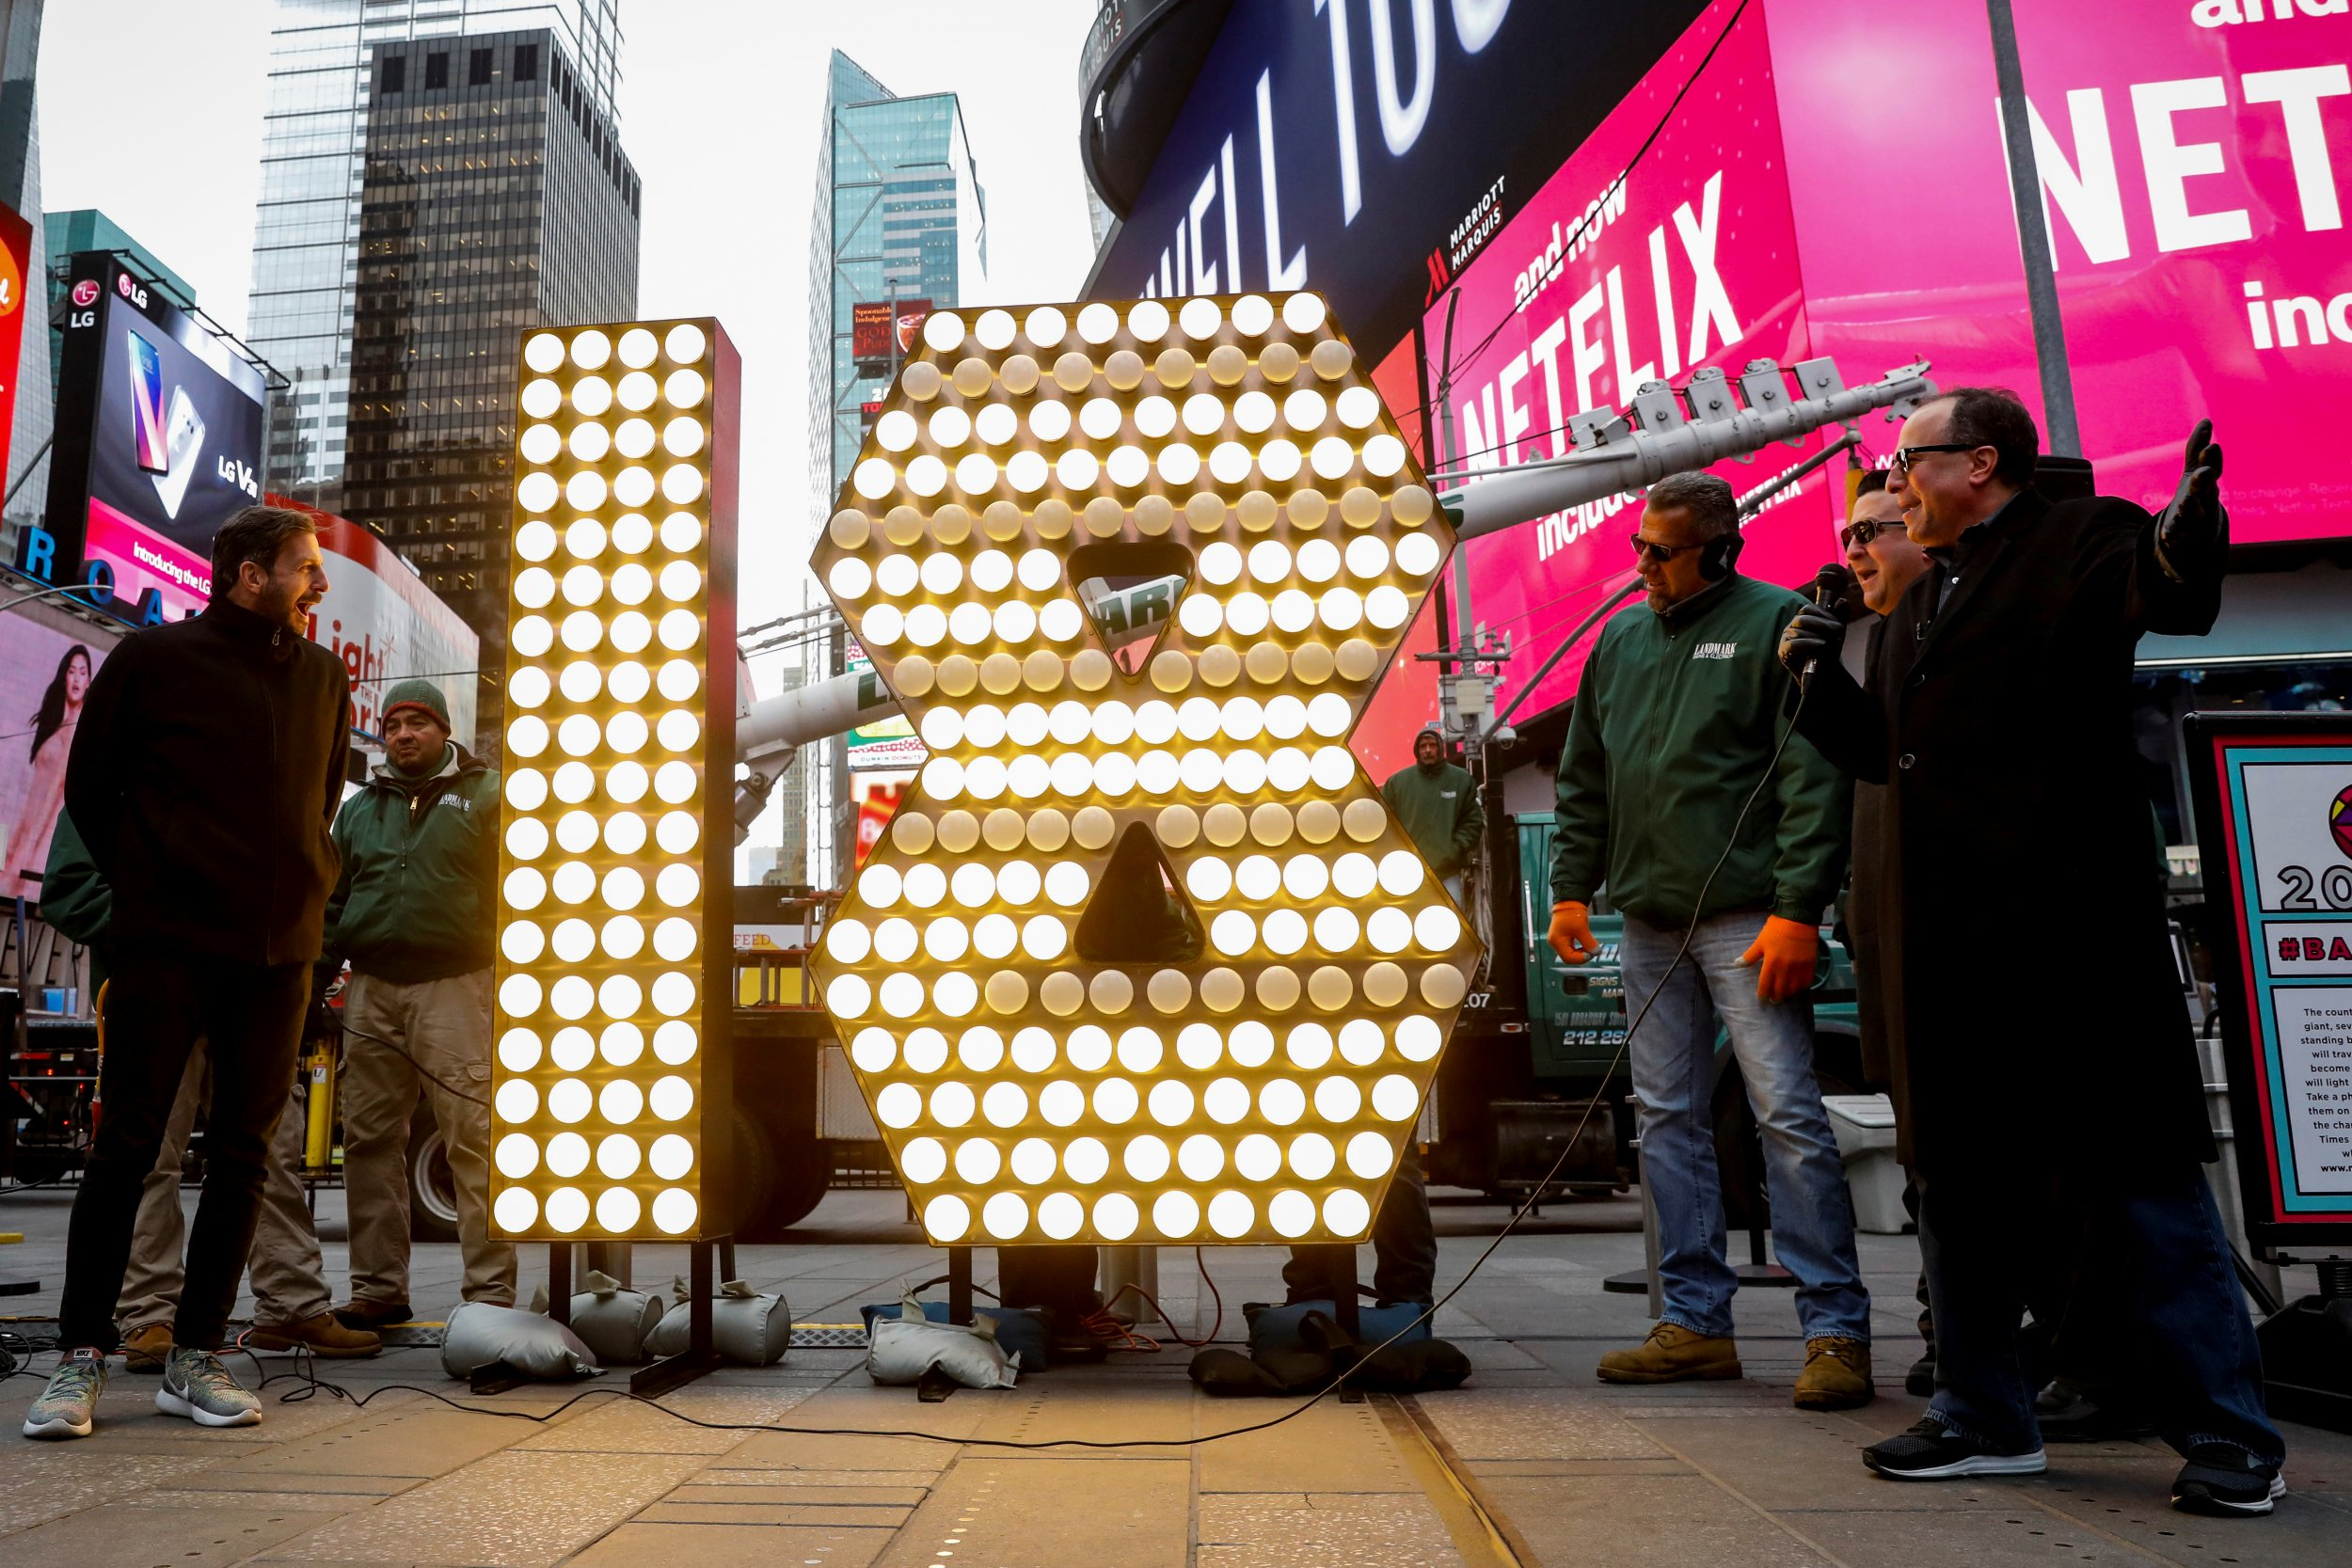 12_23_New_Year's_Times_Square_2018